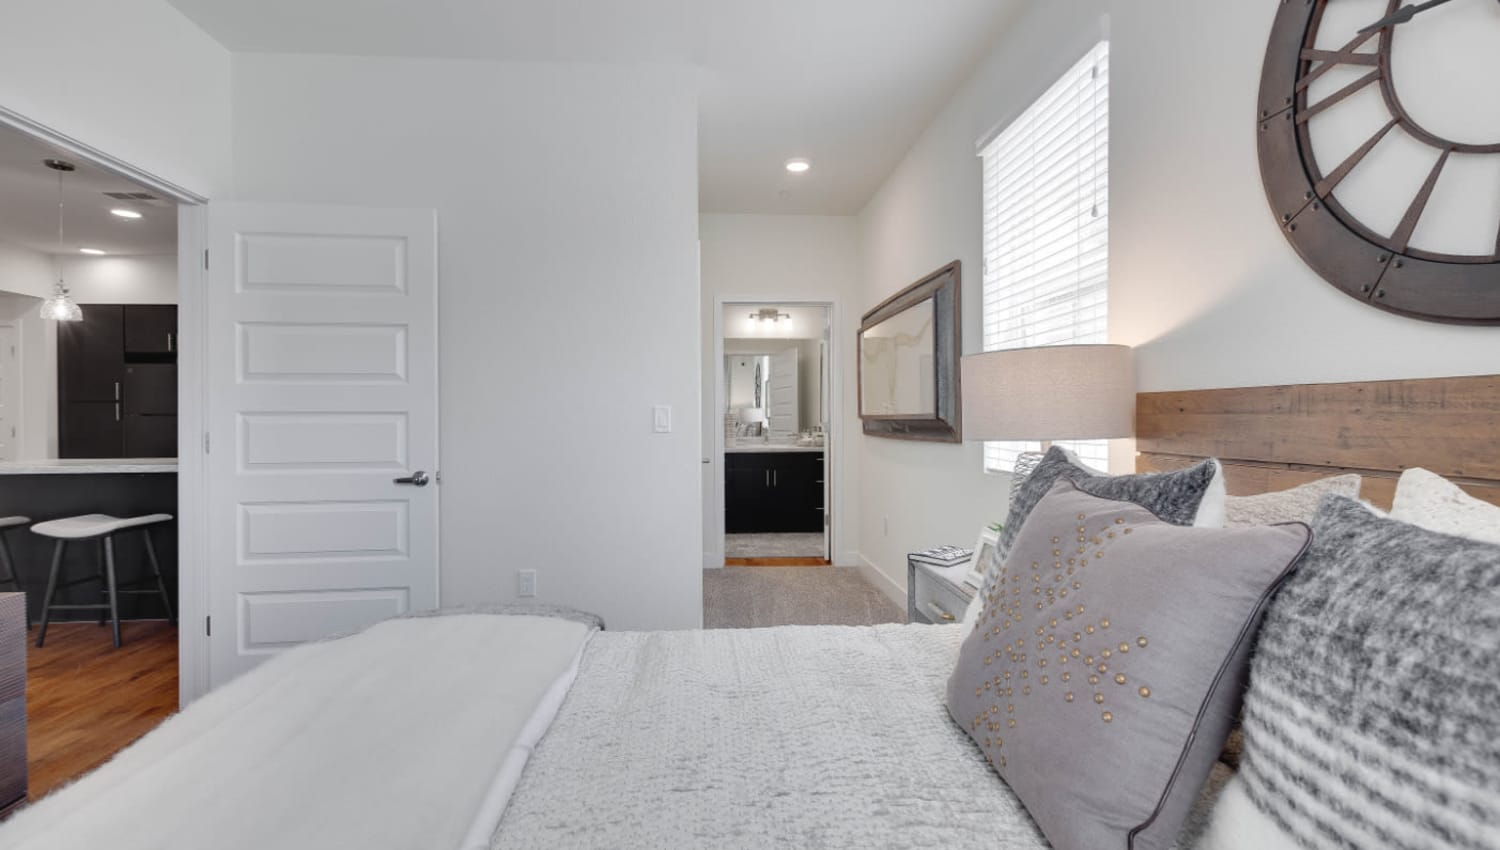 Well-furnished bedrooms at Olympus Rodeo in Santa Fe, New Mexico